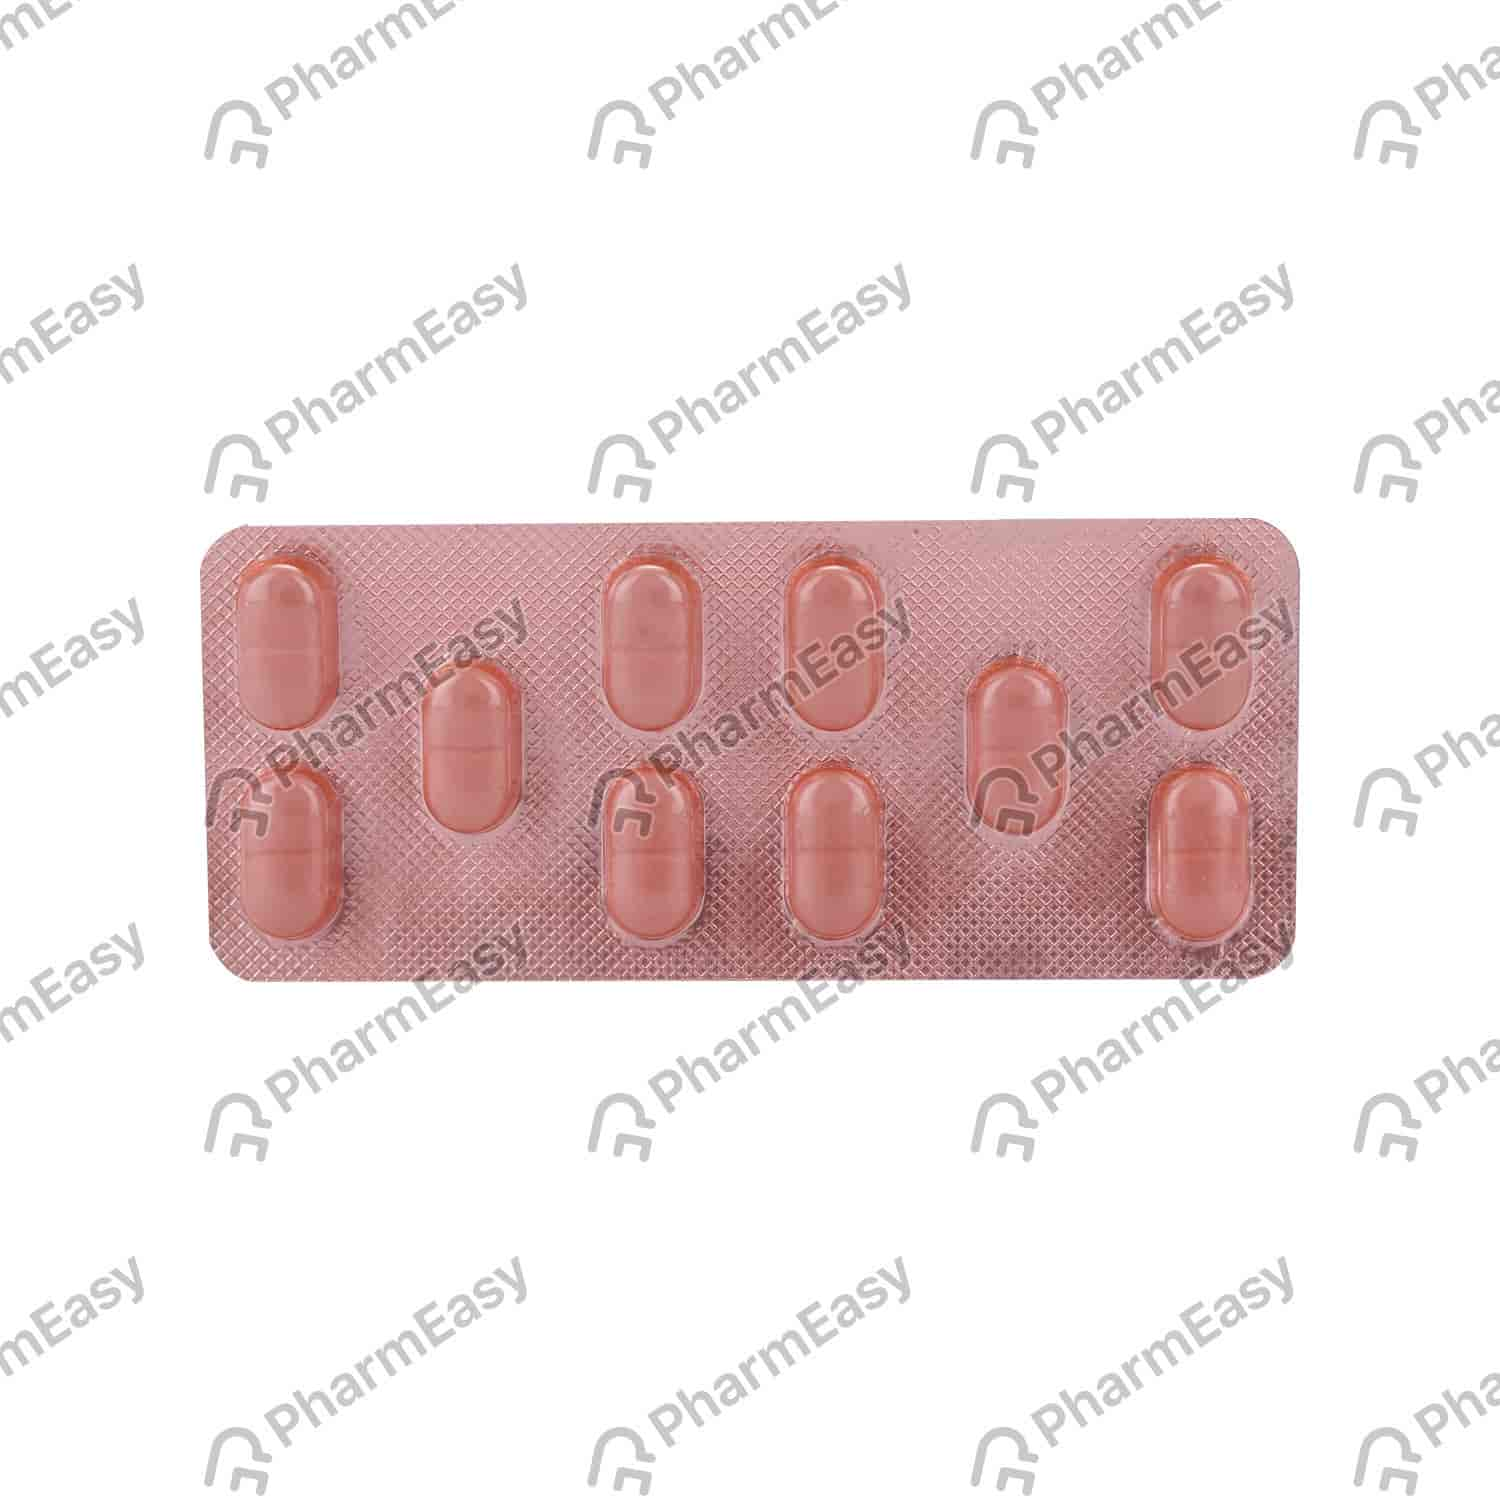 Clavix 150mg Tablet